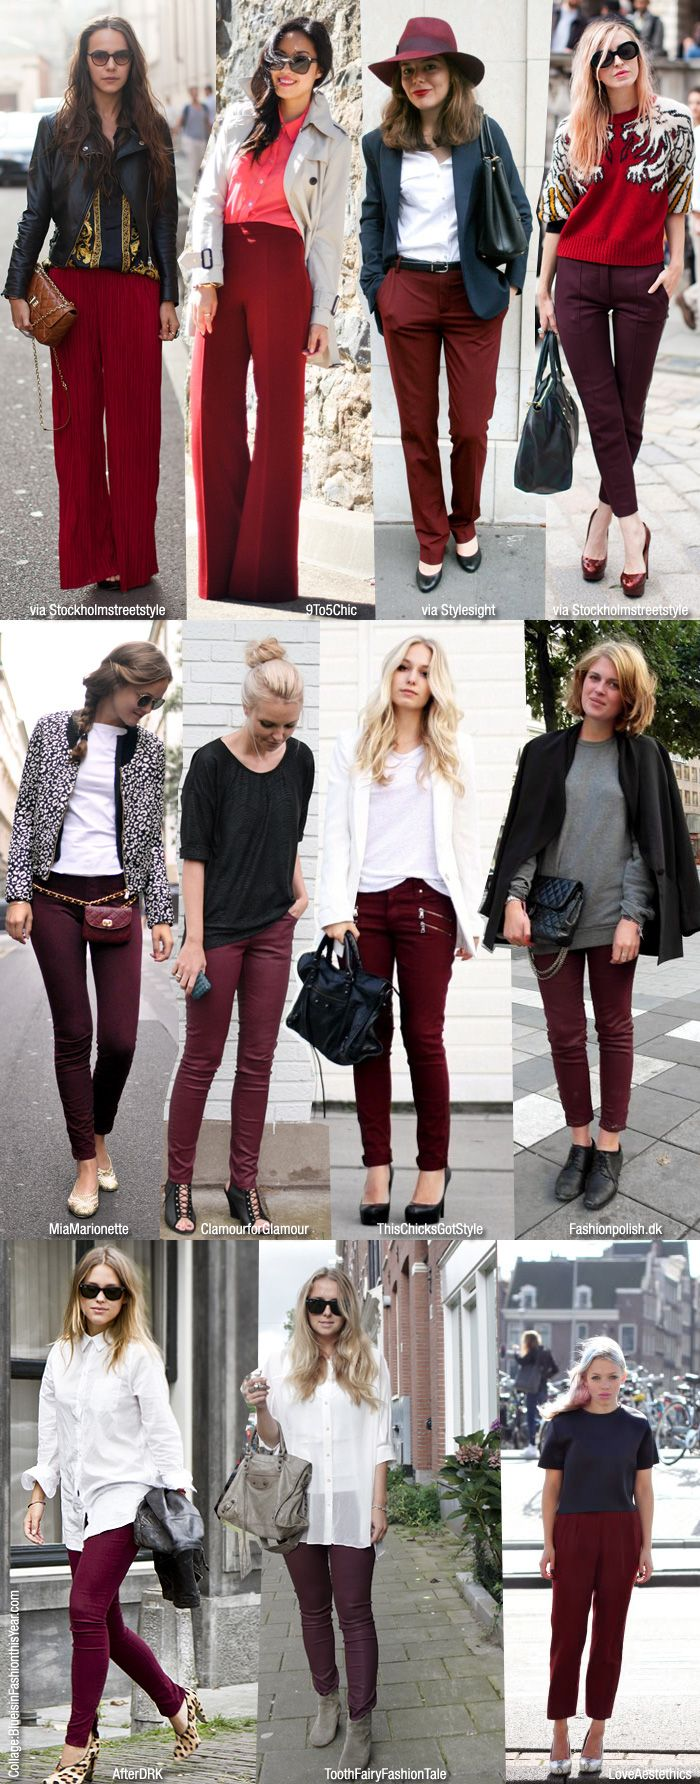 These pictures must have been taken on maroon friday :)